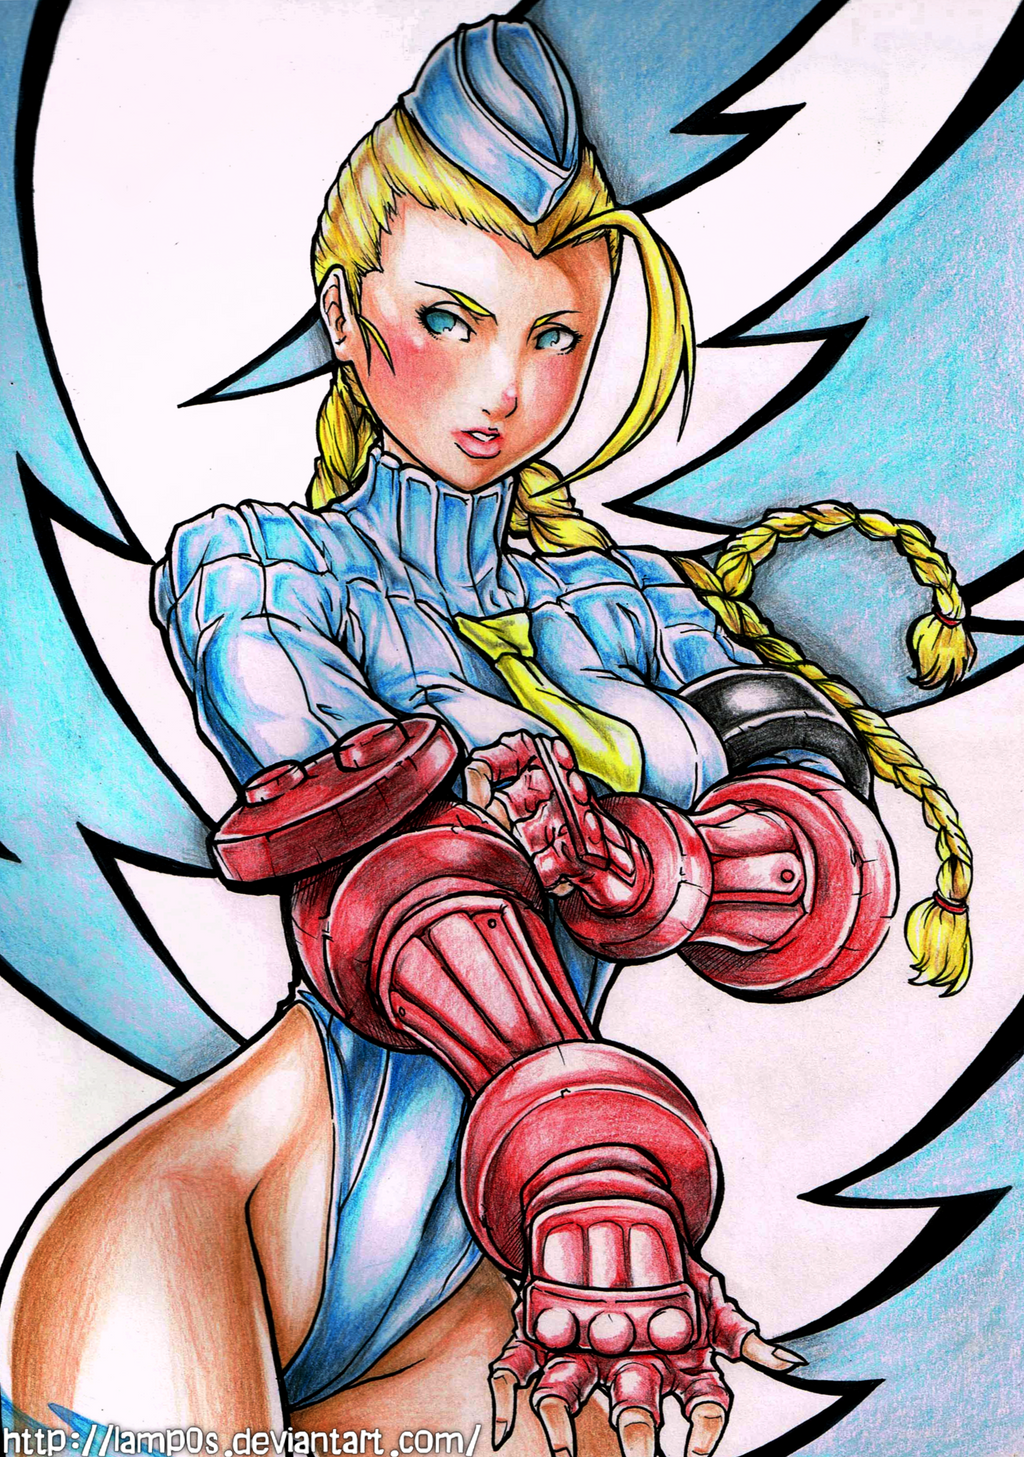 Cammy White by lamp0s